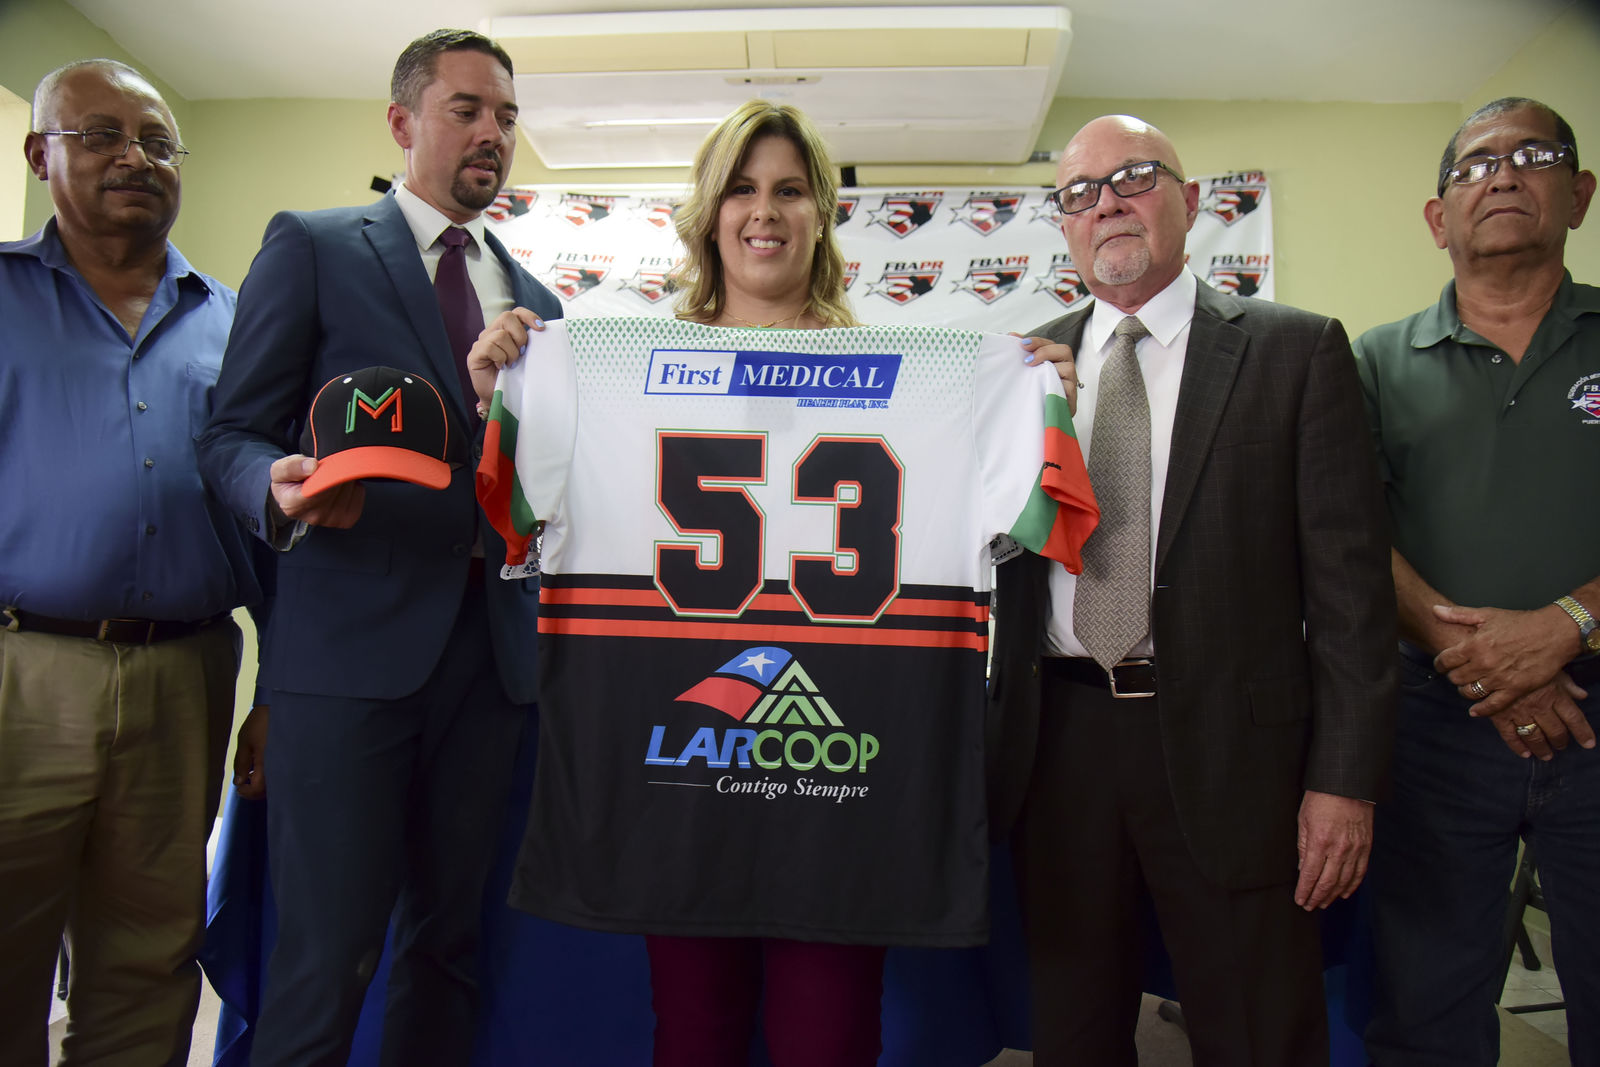 First baseman and member of the National Women's Baseball Team, Diamilette Quiles Alicea, center, is presented as the first female player to sign with The Utuado Highlanders, one of the teams that participate in the Superior Double A Baseball League, in San Juan, Puerto Rico, Thursday, May 16, 2019. Quiles Alicea shows the team's colors accompanied by the executive director of the League, Pedro Vargas, left, the representative of the Montaneses of Utuado Rafael Juarbe, second left, the president of the Federation, Dr. Jose Quiles Rosas, second right, and the executive director of the Women's Baseball League, José Rafael Torres. (AP Photo/Carlos Giusti)